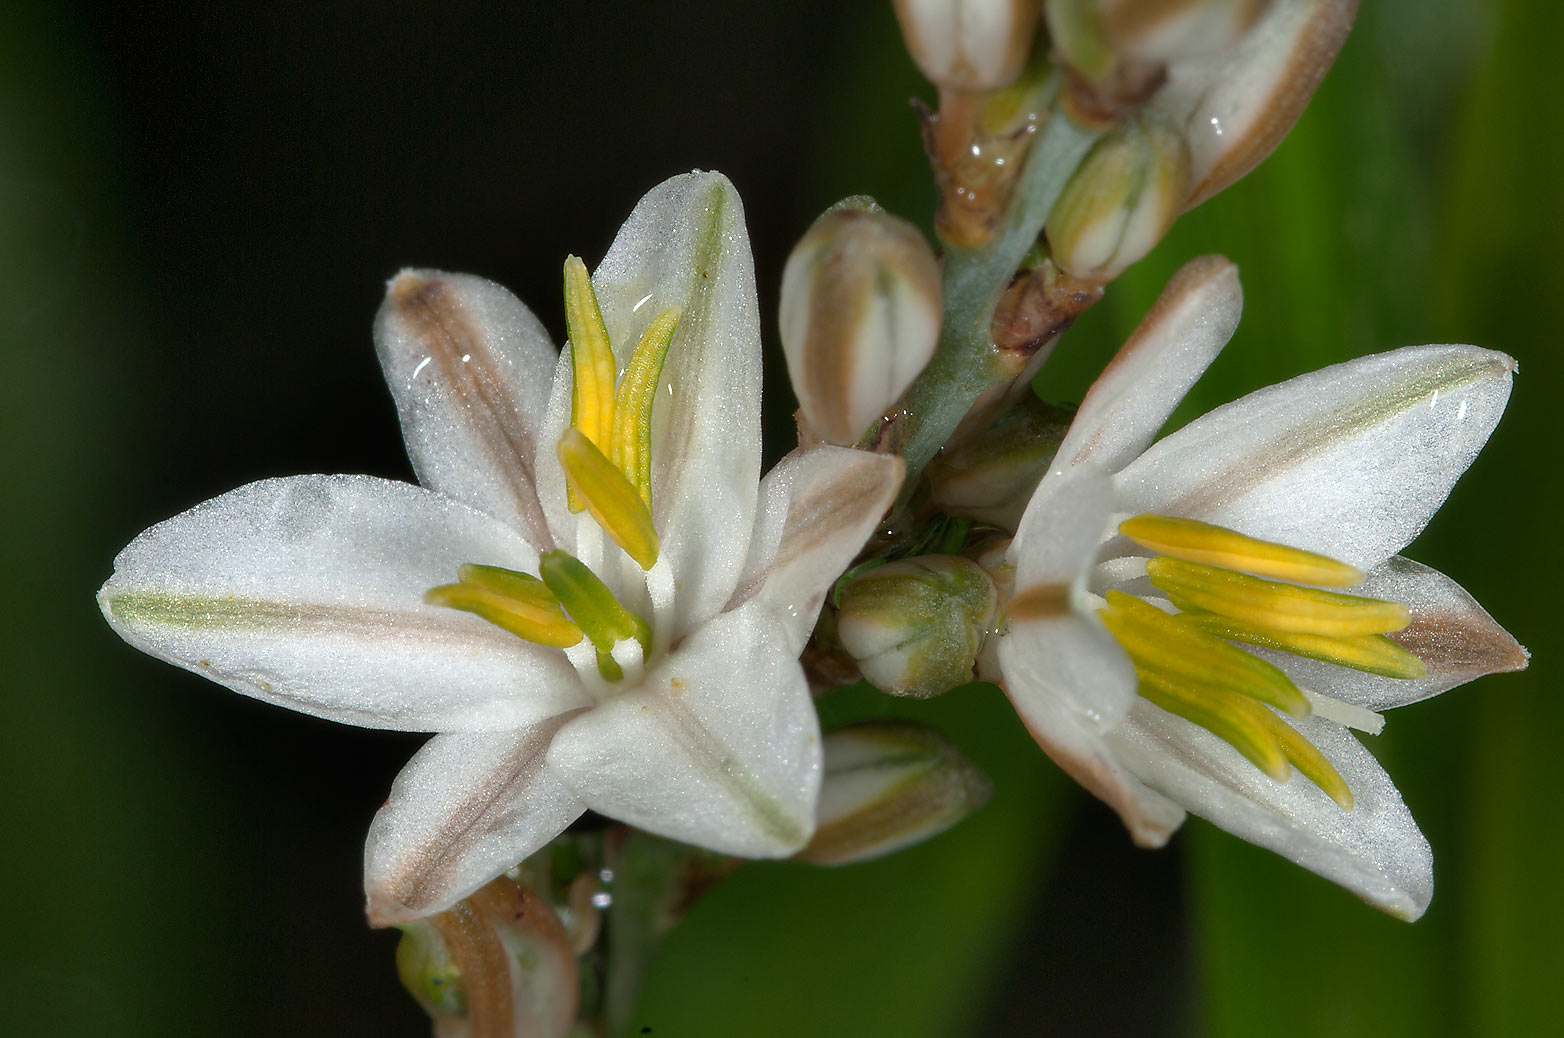 Asphodel flowers in TAMU Holistic Garden in Texas...M University. College Station, Texas